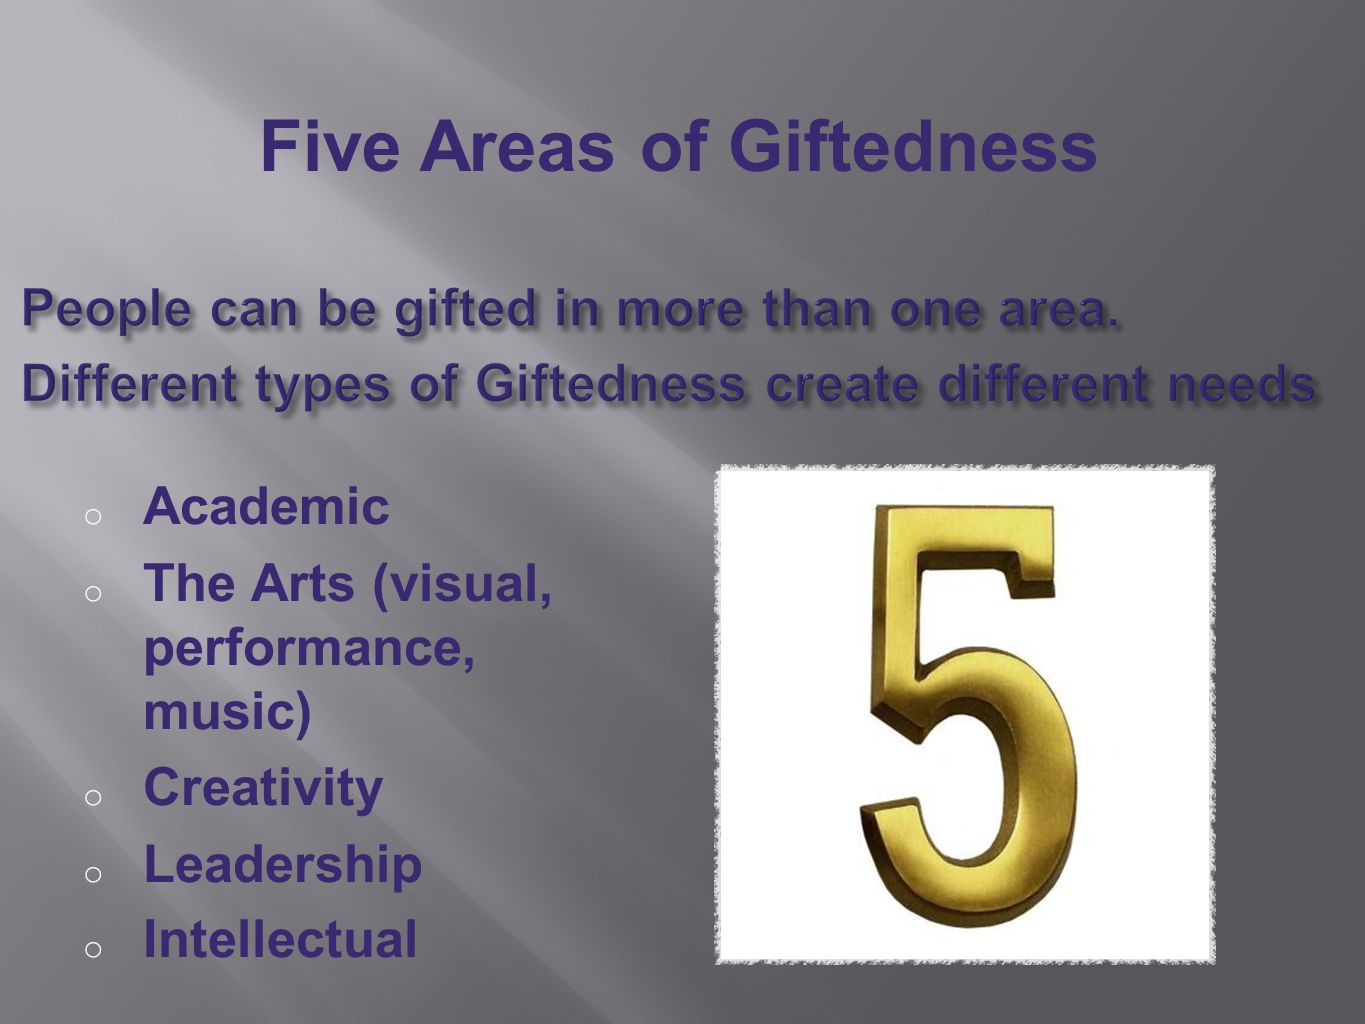 o Academic o The Arts (visual, performance, music) o Creativity o Leadership o Intellectual Five Areas of Giftedness